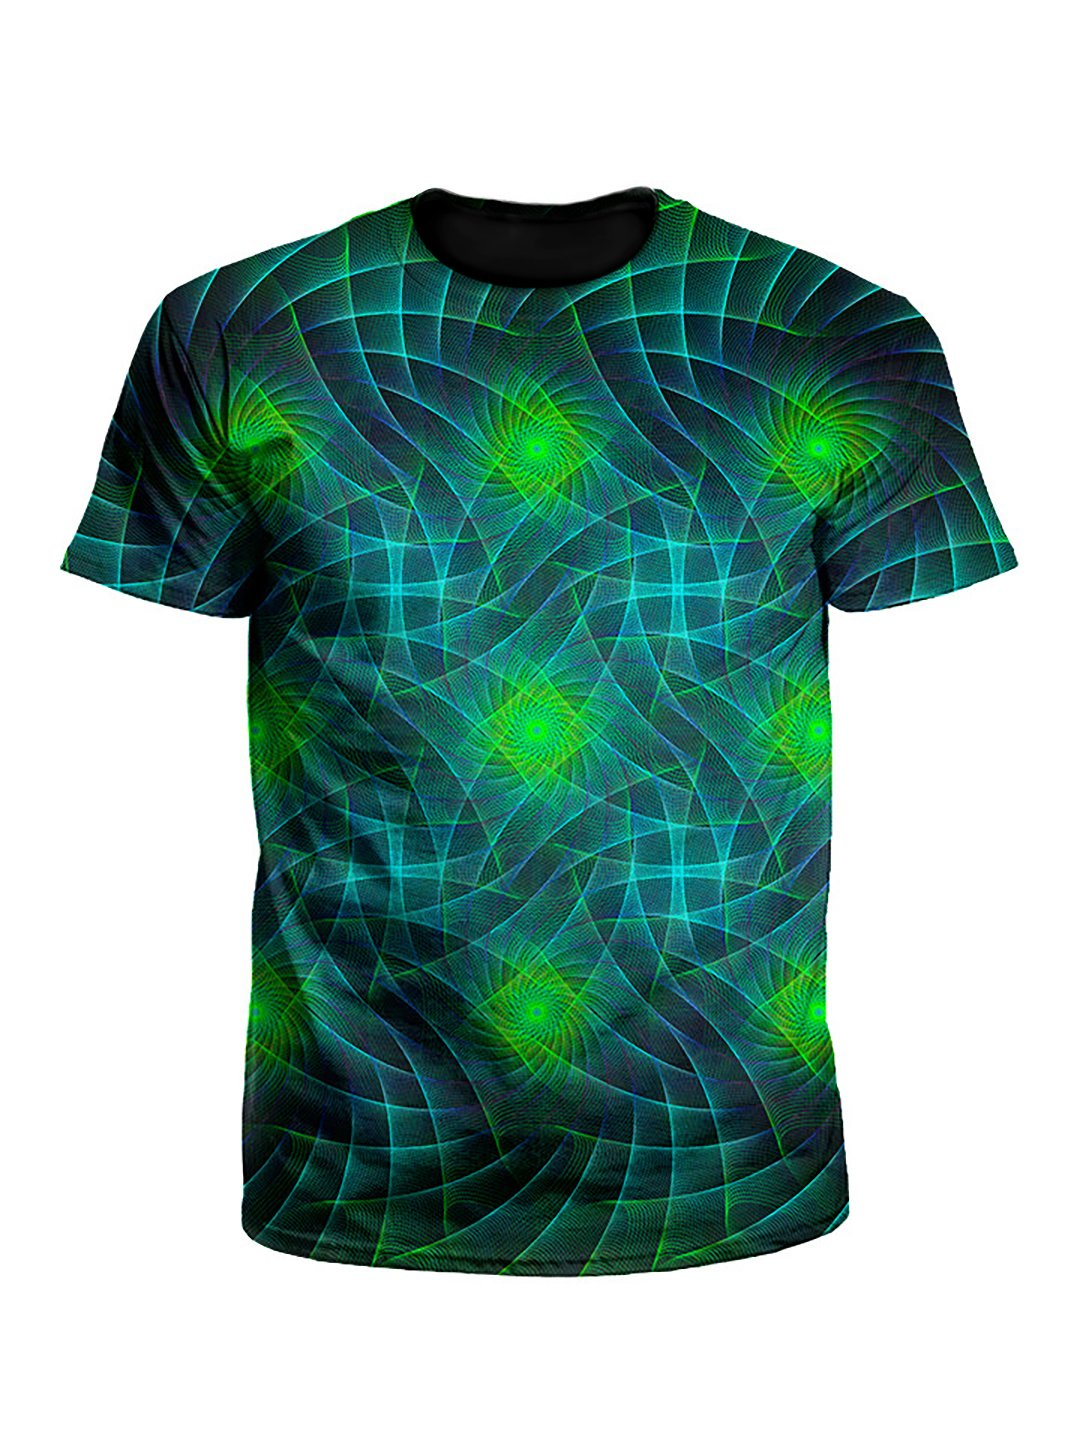 Motherboard Geometric Fractal Unisex T-Shirt